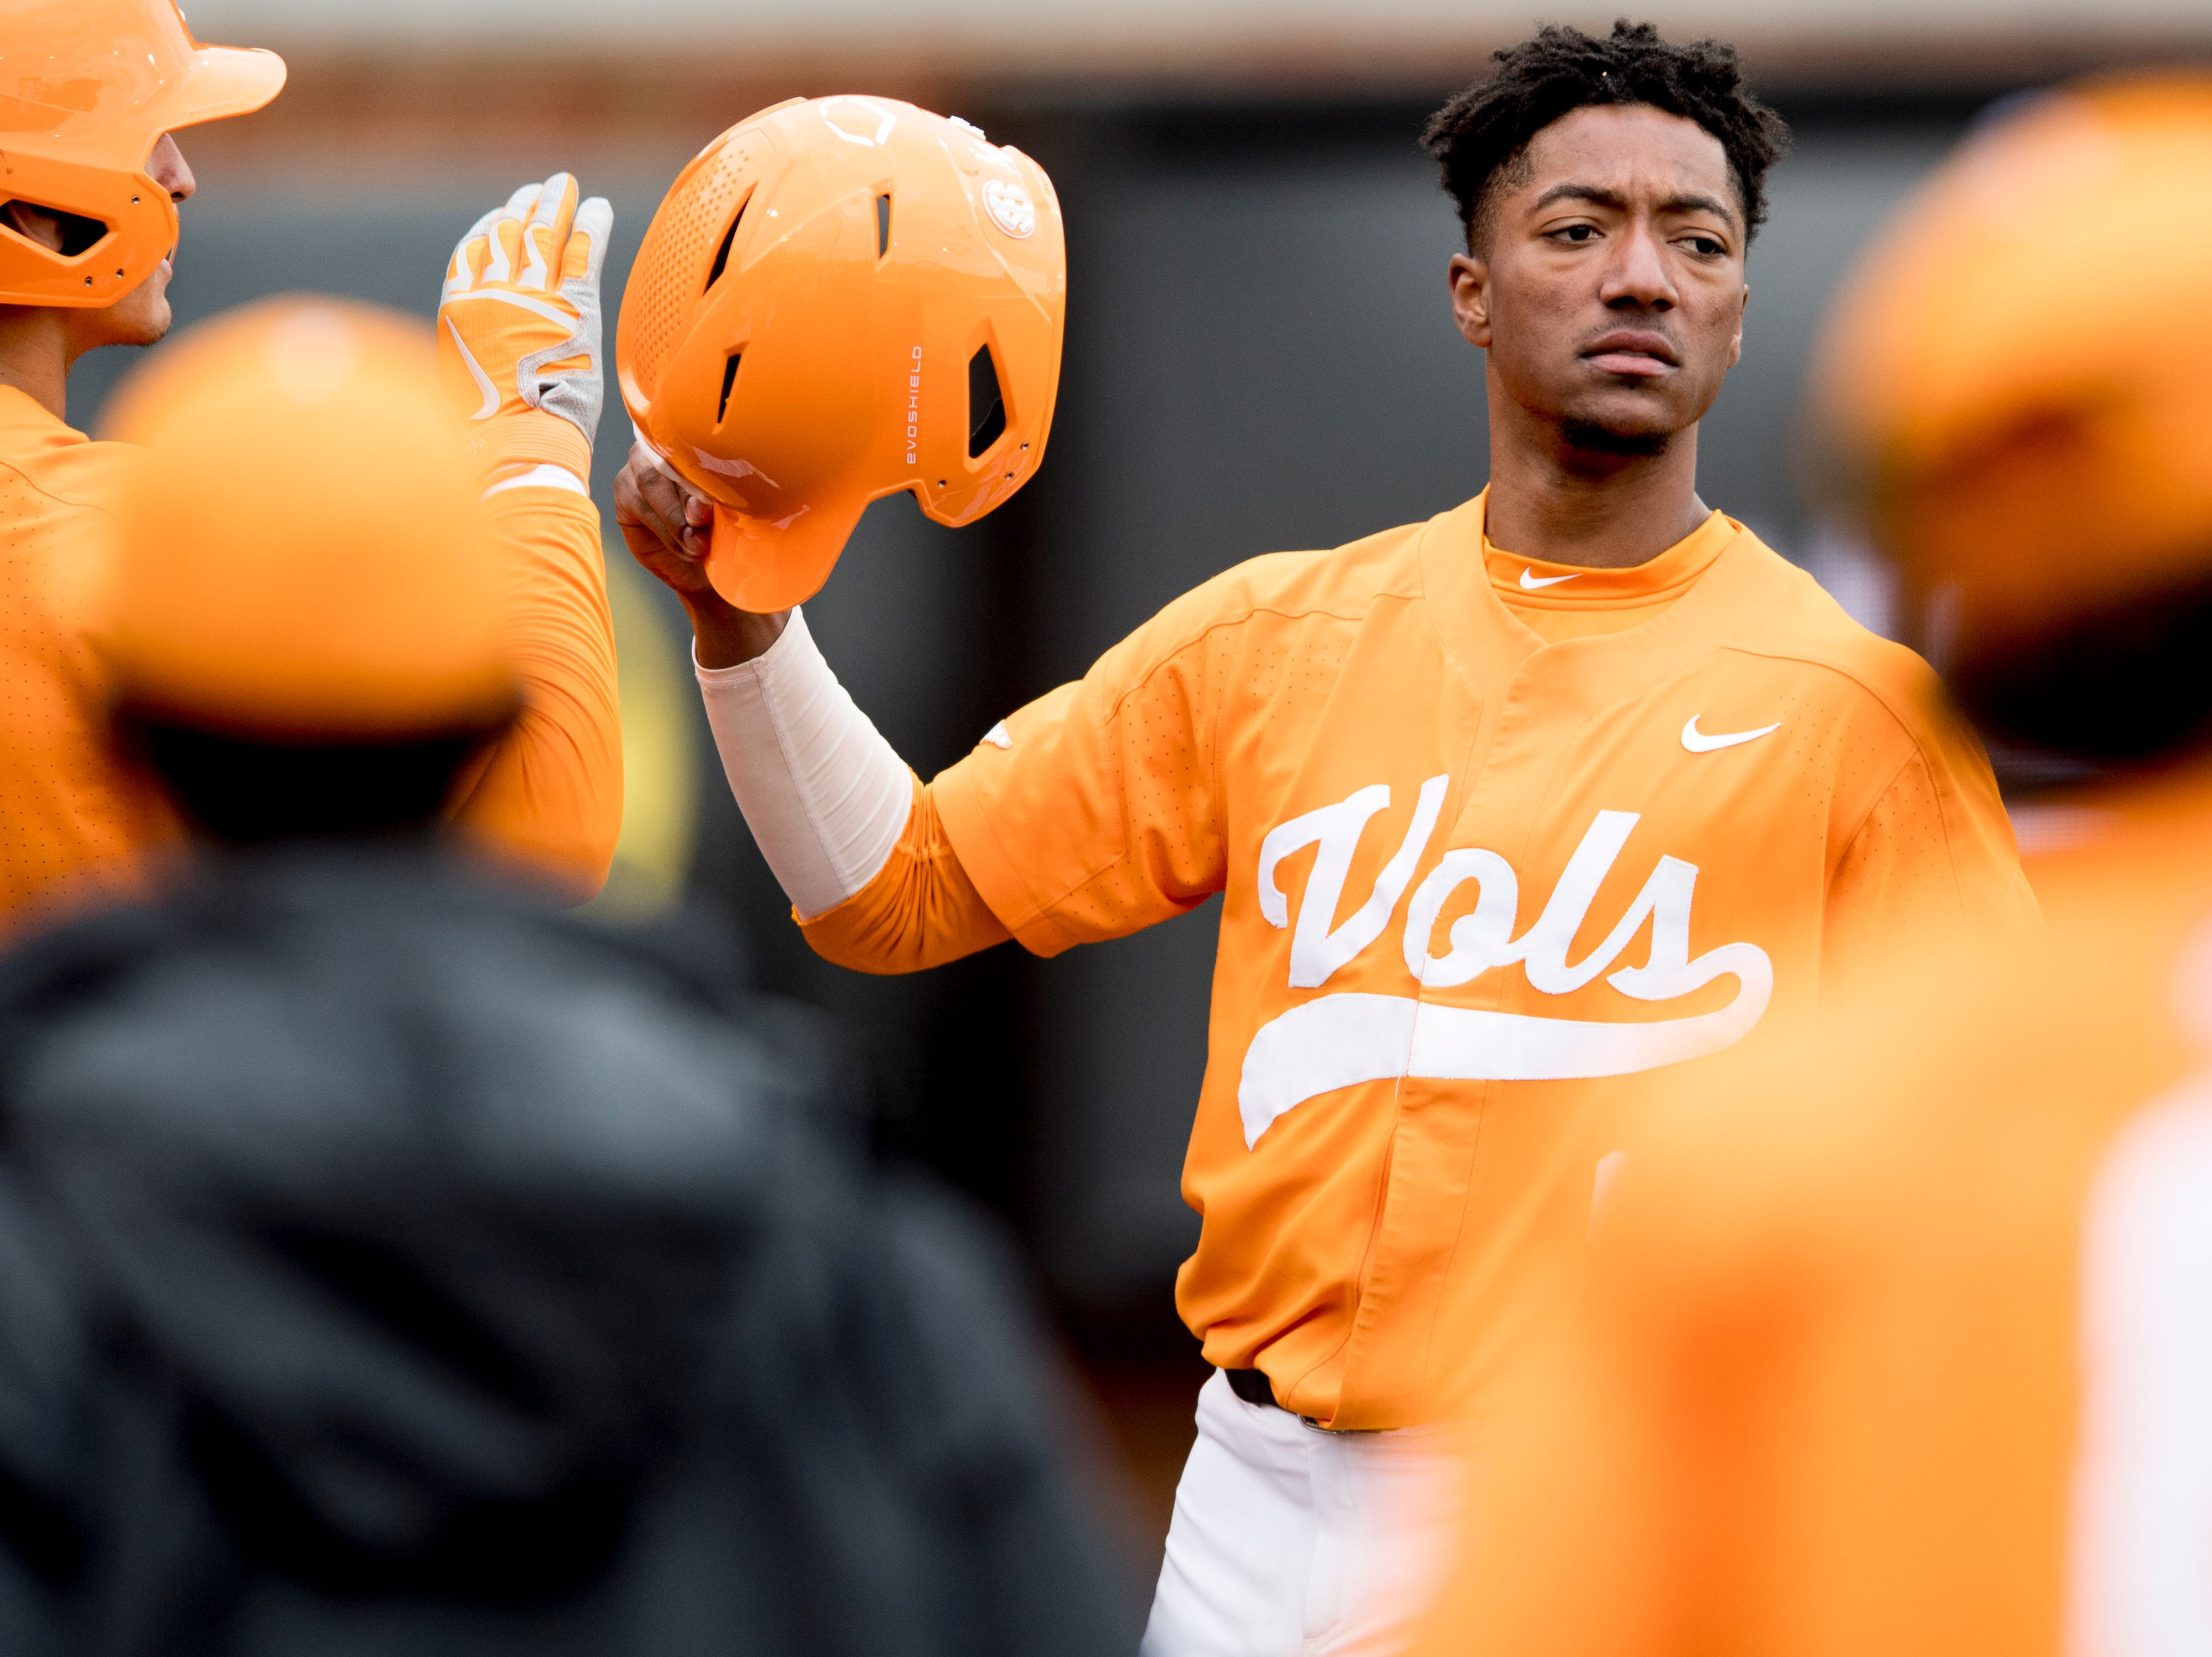 Tennessee outfielder/infielder Jay Charleston (4) is congratulated on his home run in the third inning during a Tennessee baseball home opener game against Appalachian State at Lindsey Nelson Stadium in Knoxville, Tennessee on Saturday, February 16, 2019.